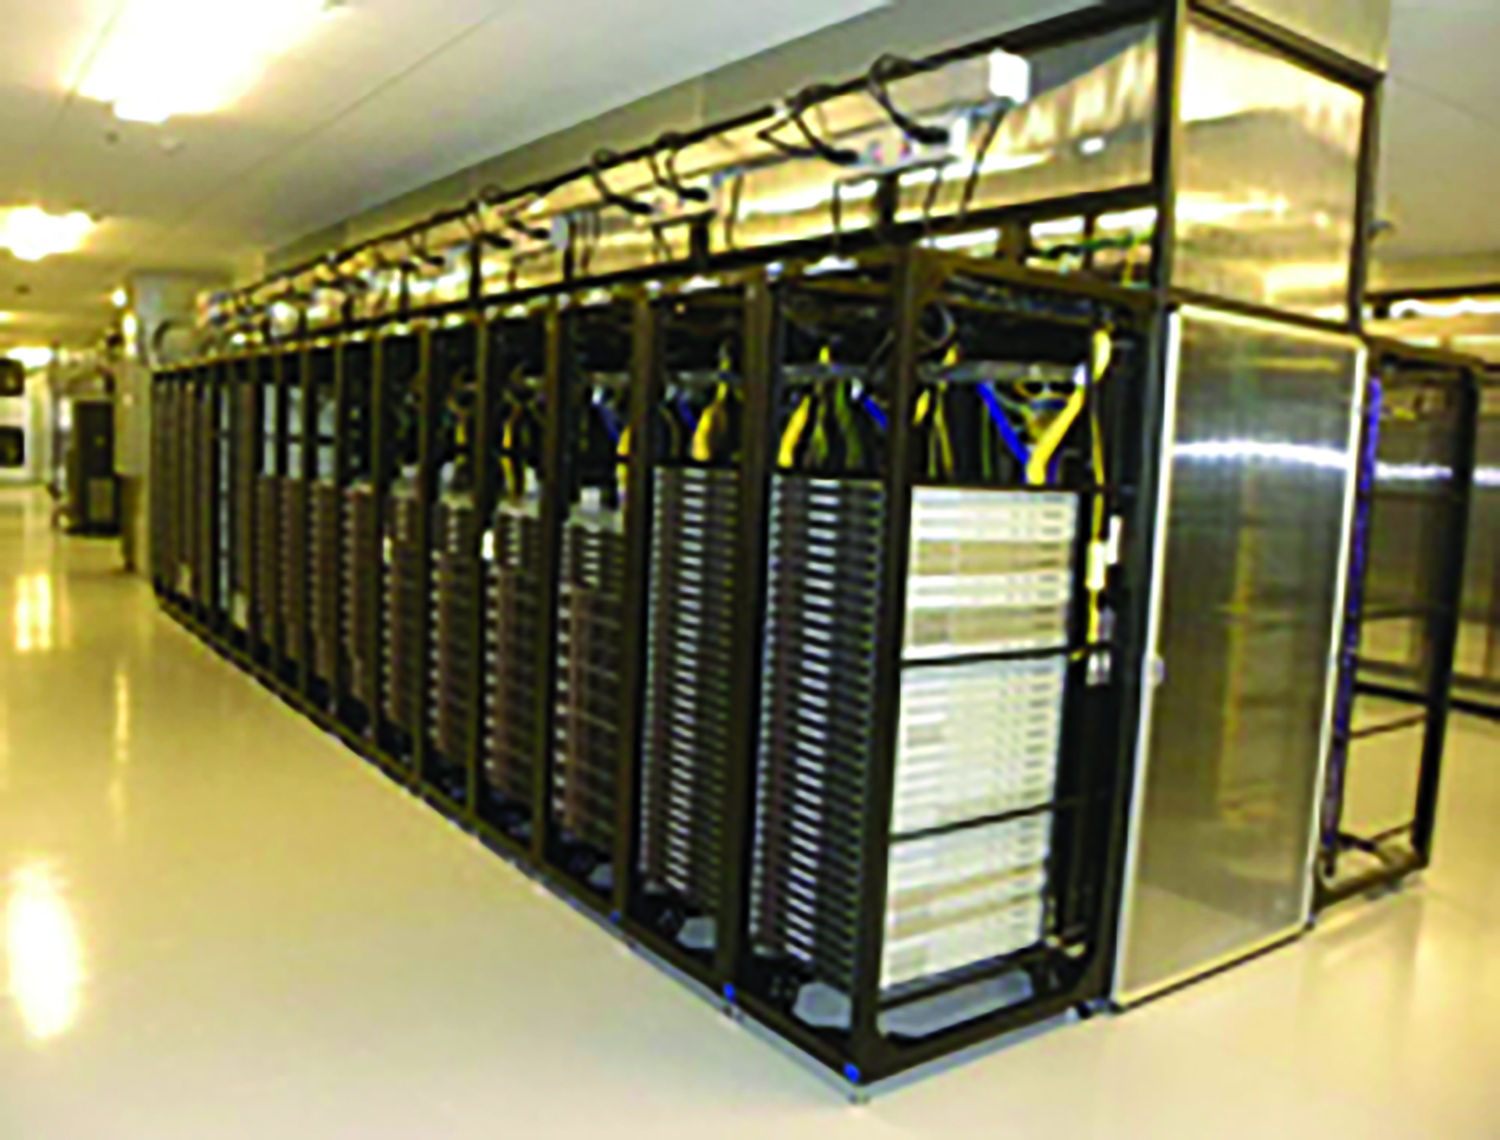 This Yahoo! server coop generates heat, which the cool temperatures of Niagara will help to offset.